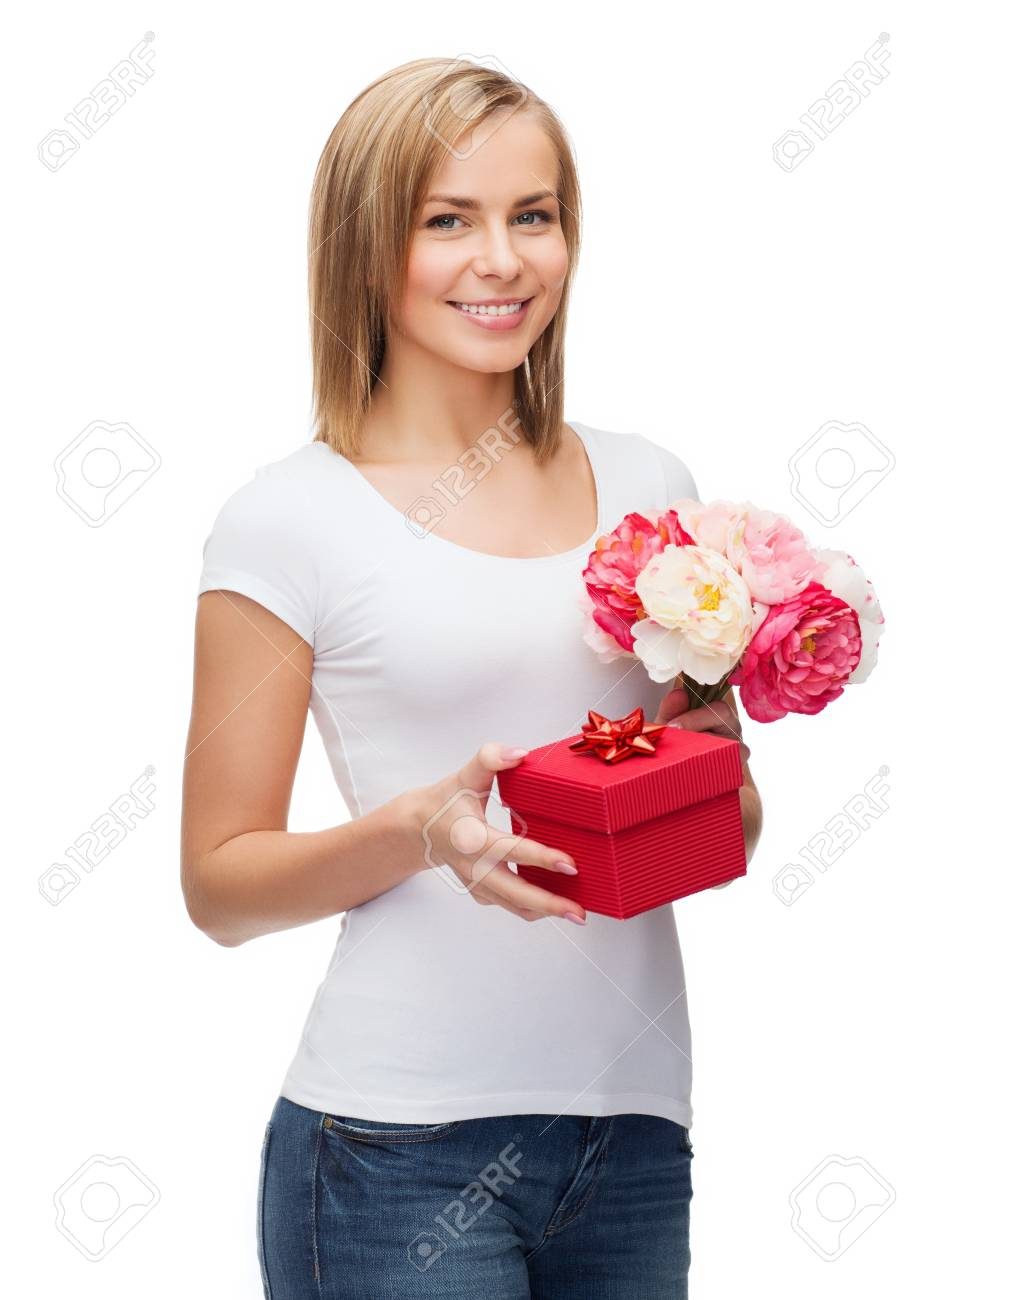 holidays, love and flowers concept - young woman with bouquet of flowers and red gift box Stock Photo - 25267358